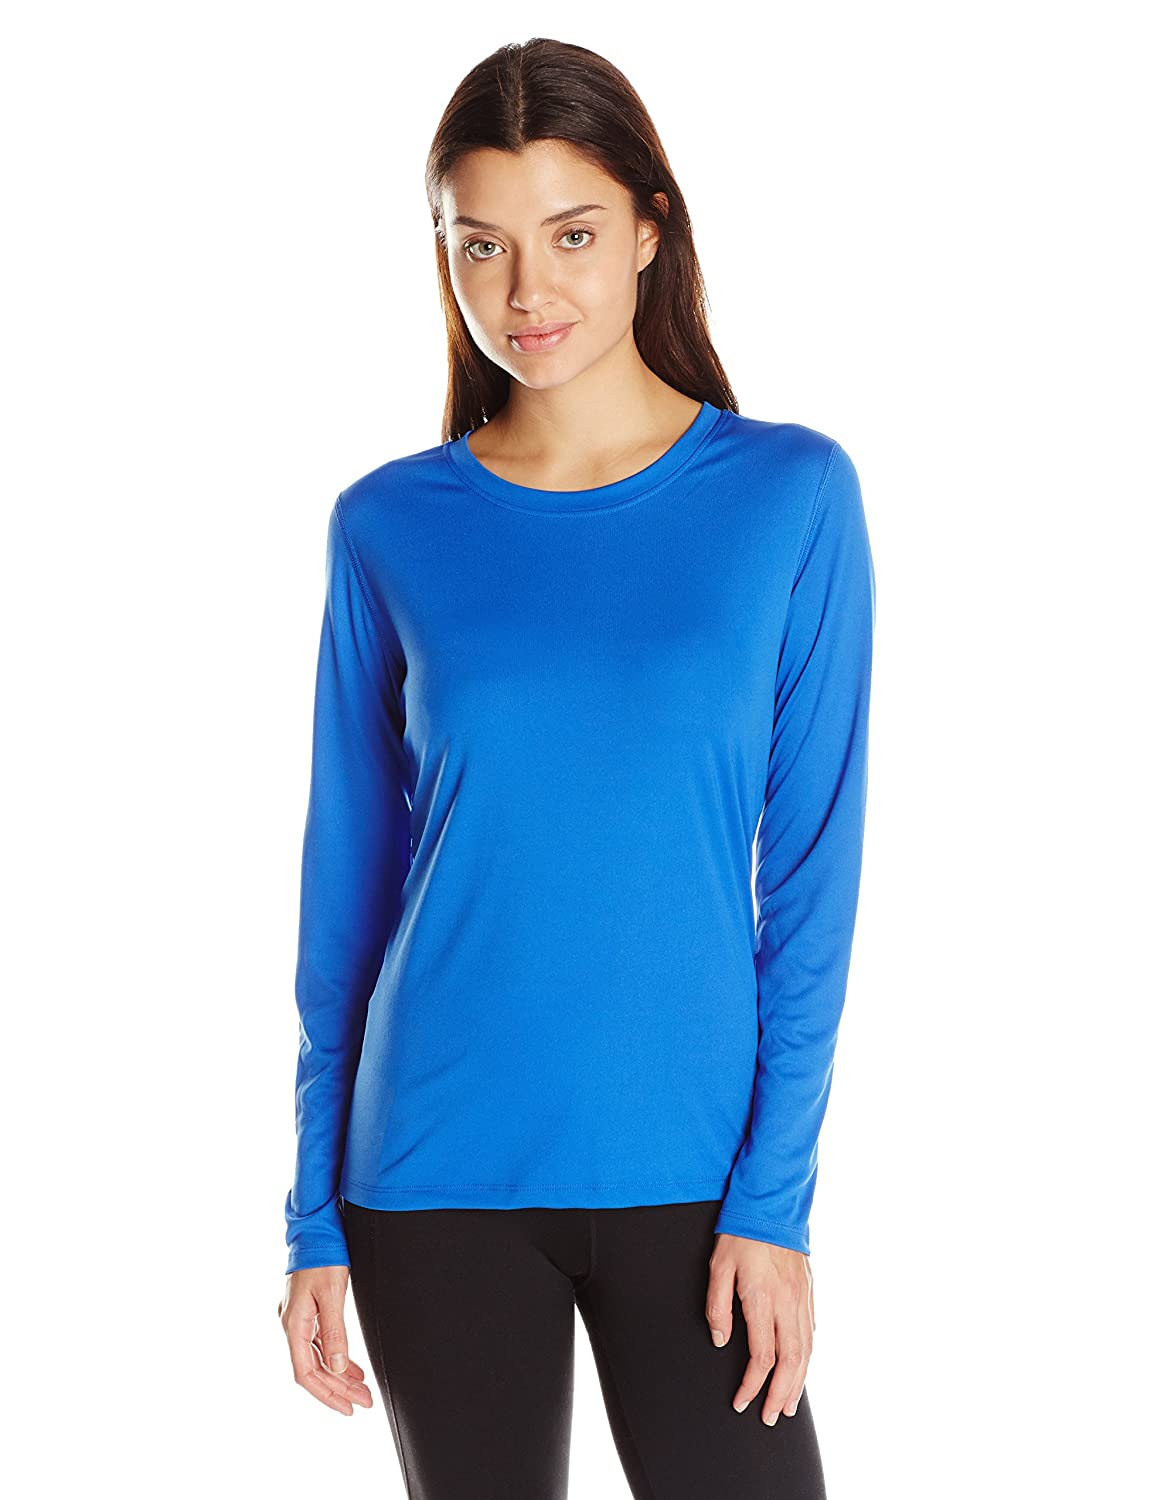 Hanes Womens Sport Cool Dri Performance Long Sleeve Tee Hanes Women's Activewear O9308